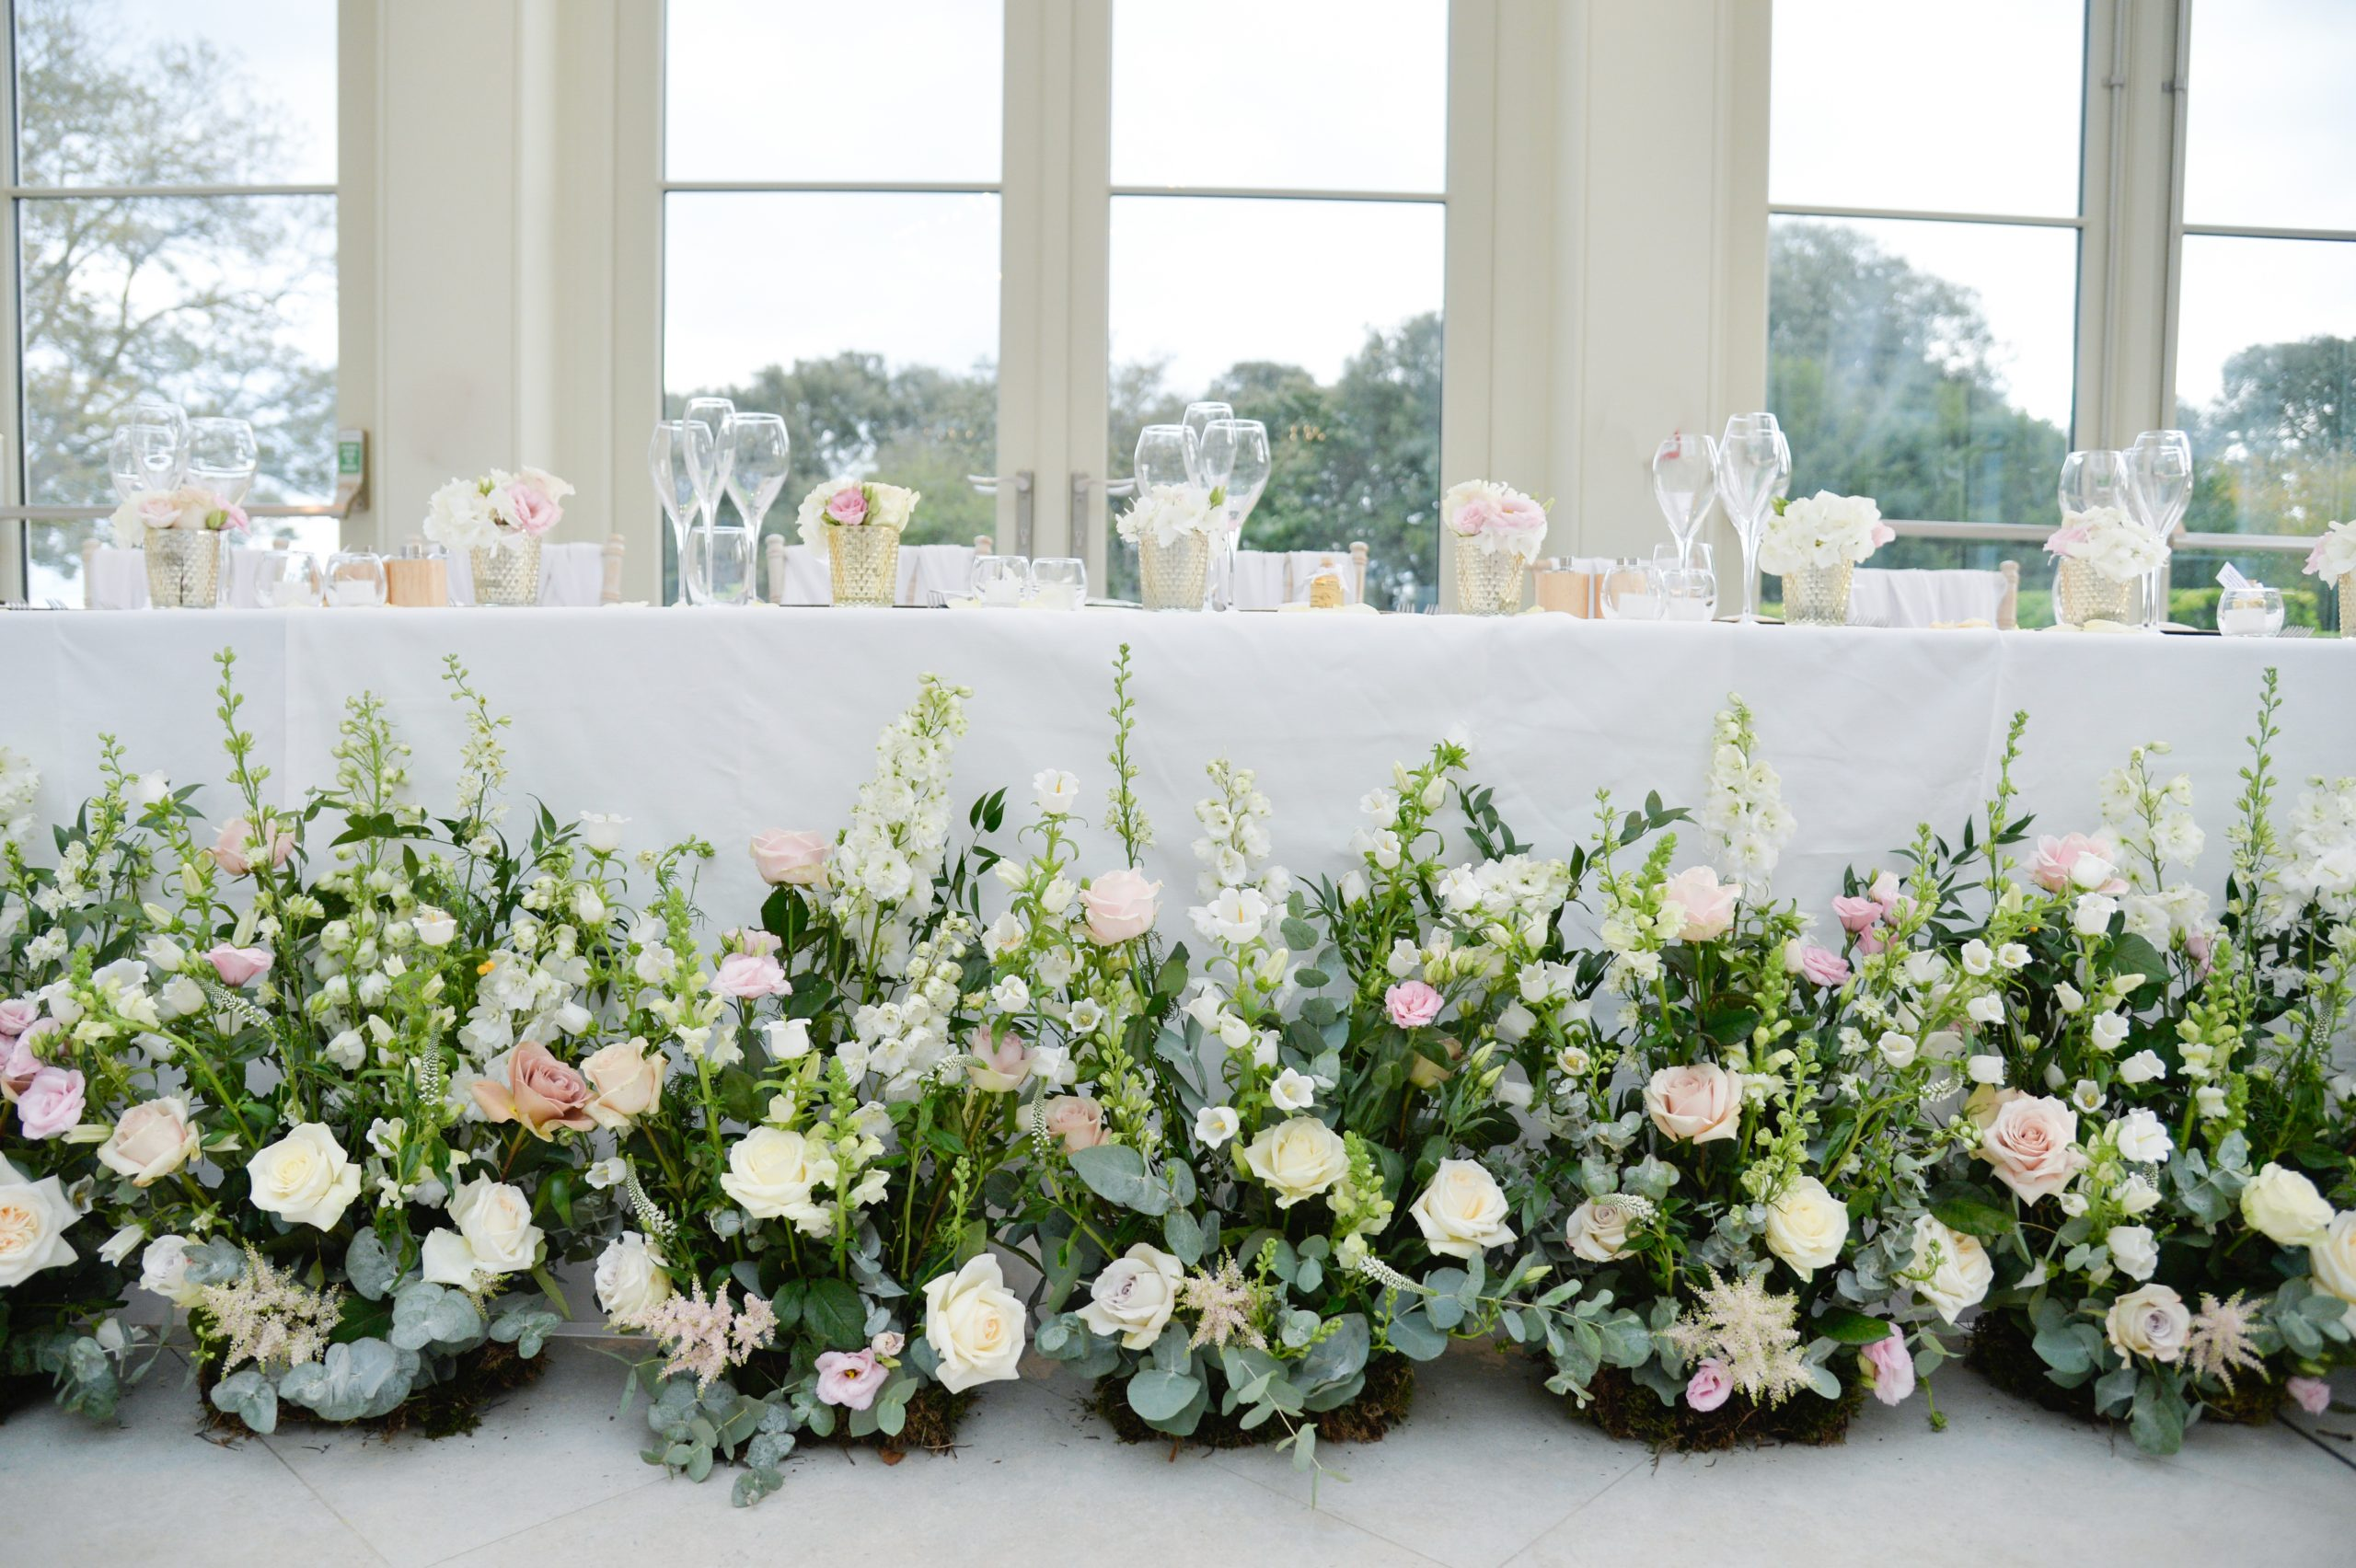 Meadow arrangements top table the orangery Clevedon Hall